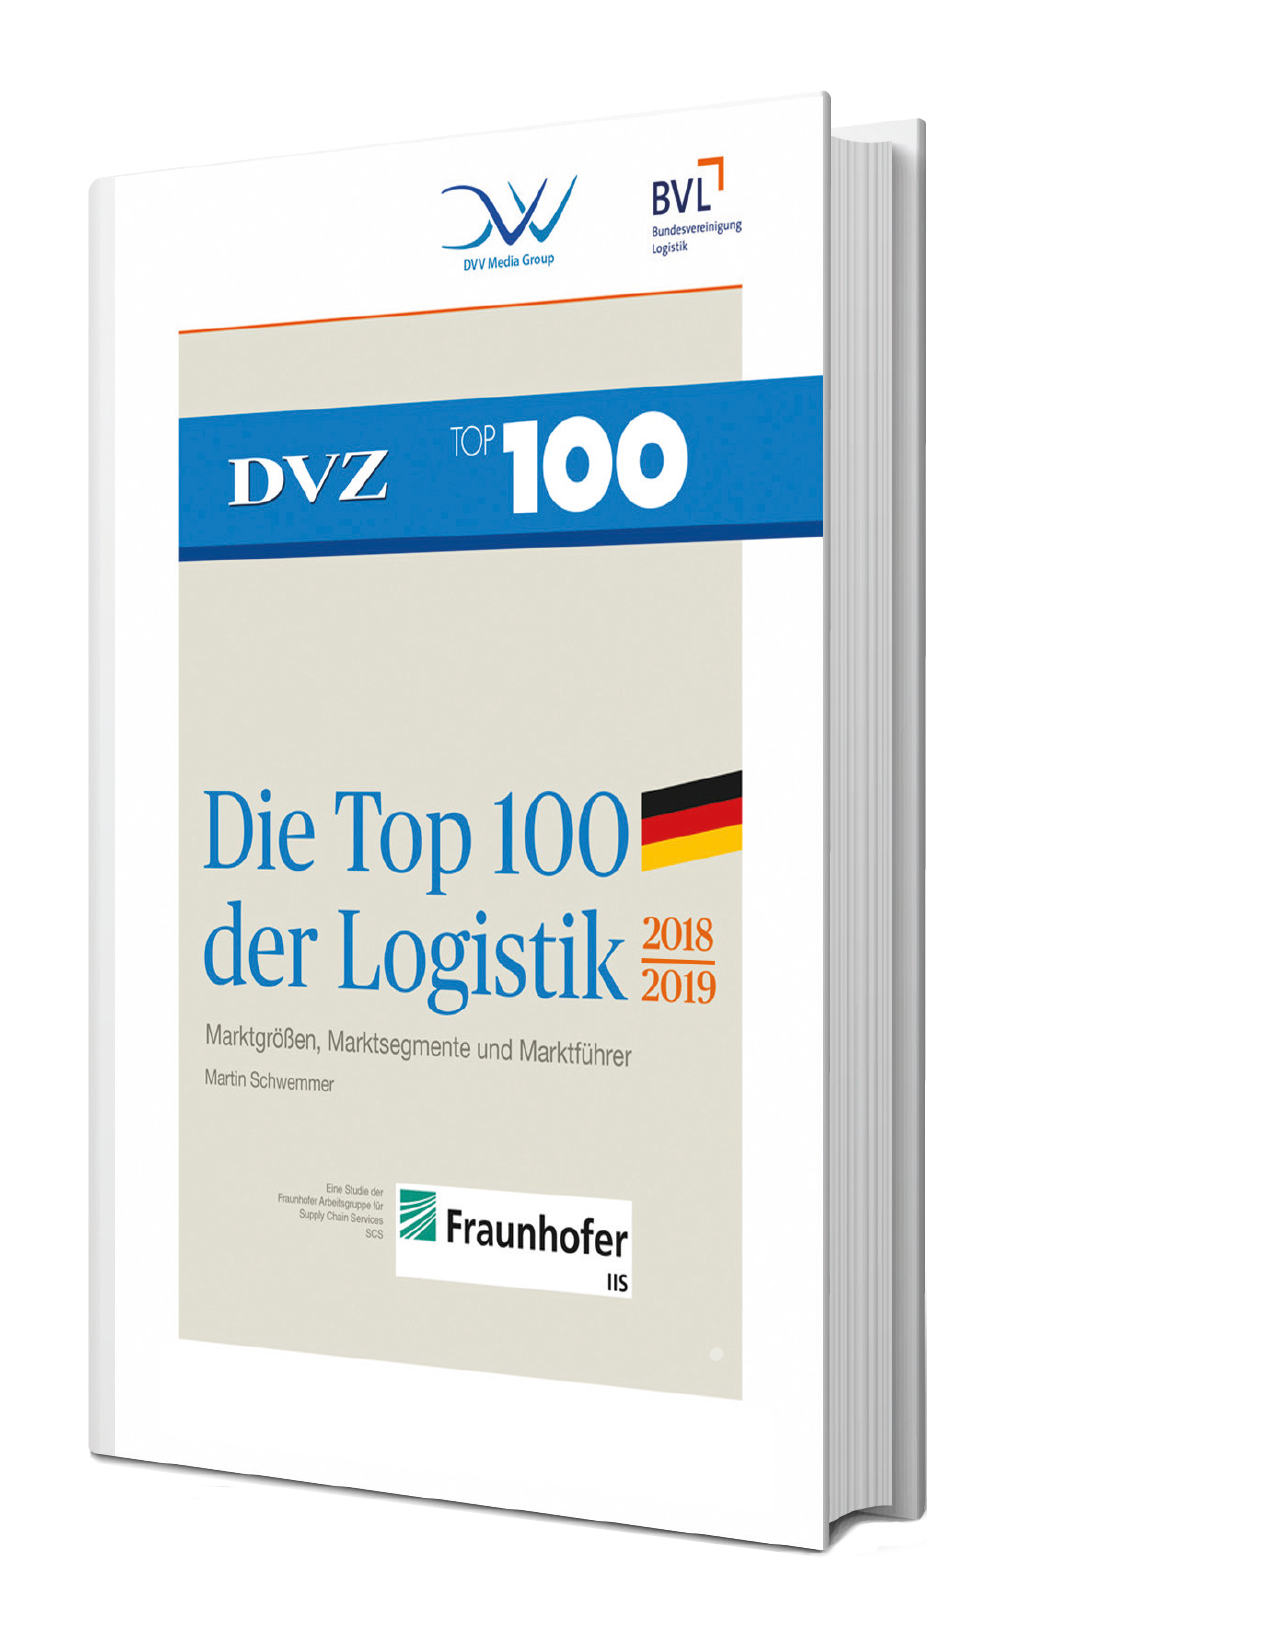 Cover der Top 100 der Logistik 2018/2019